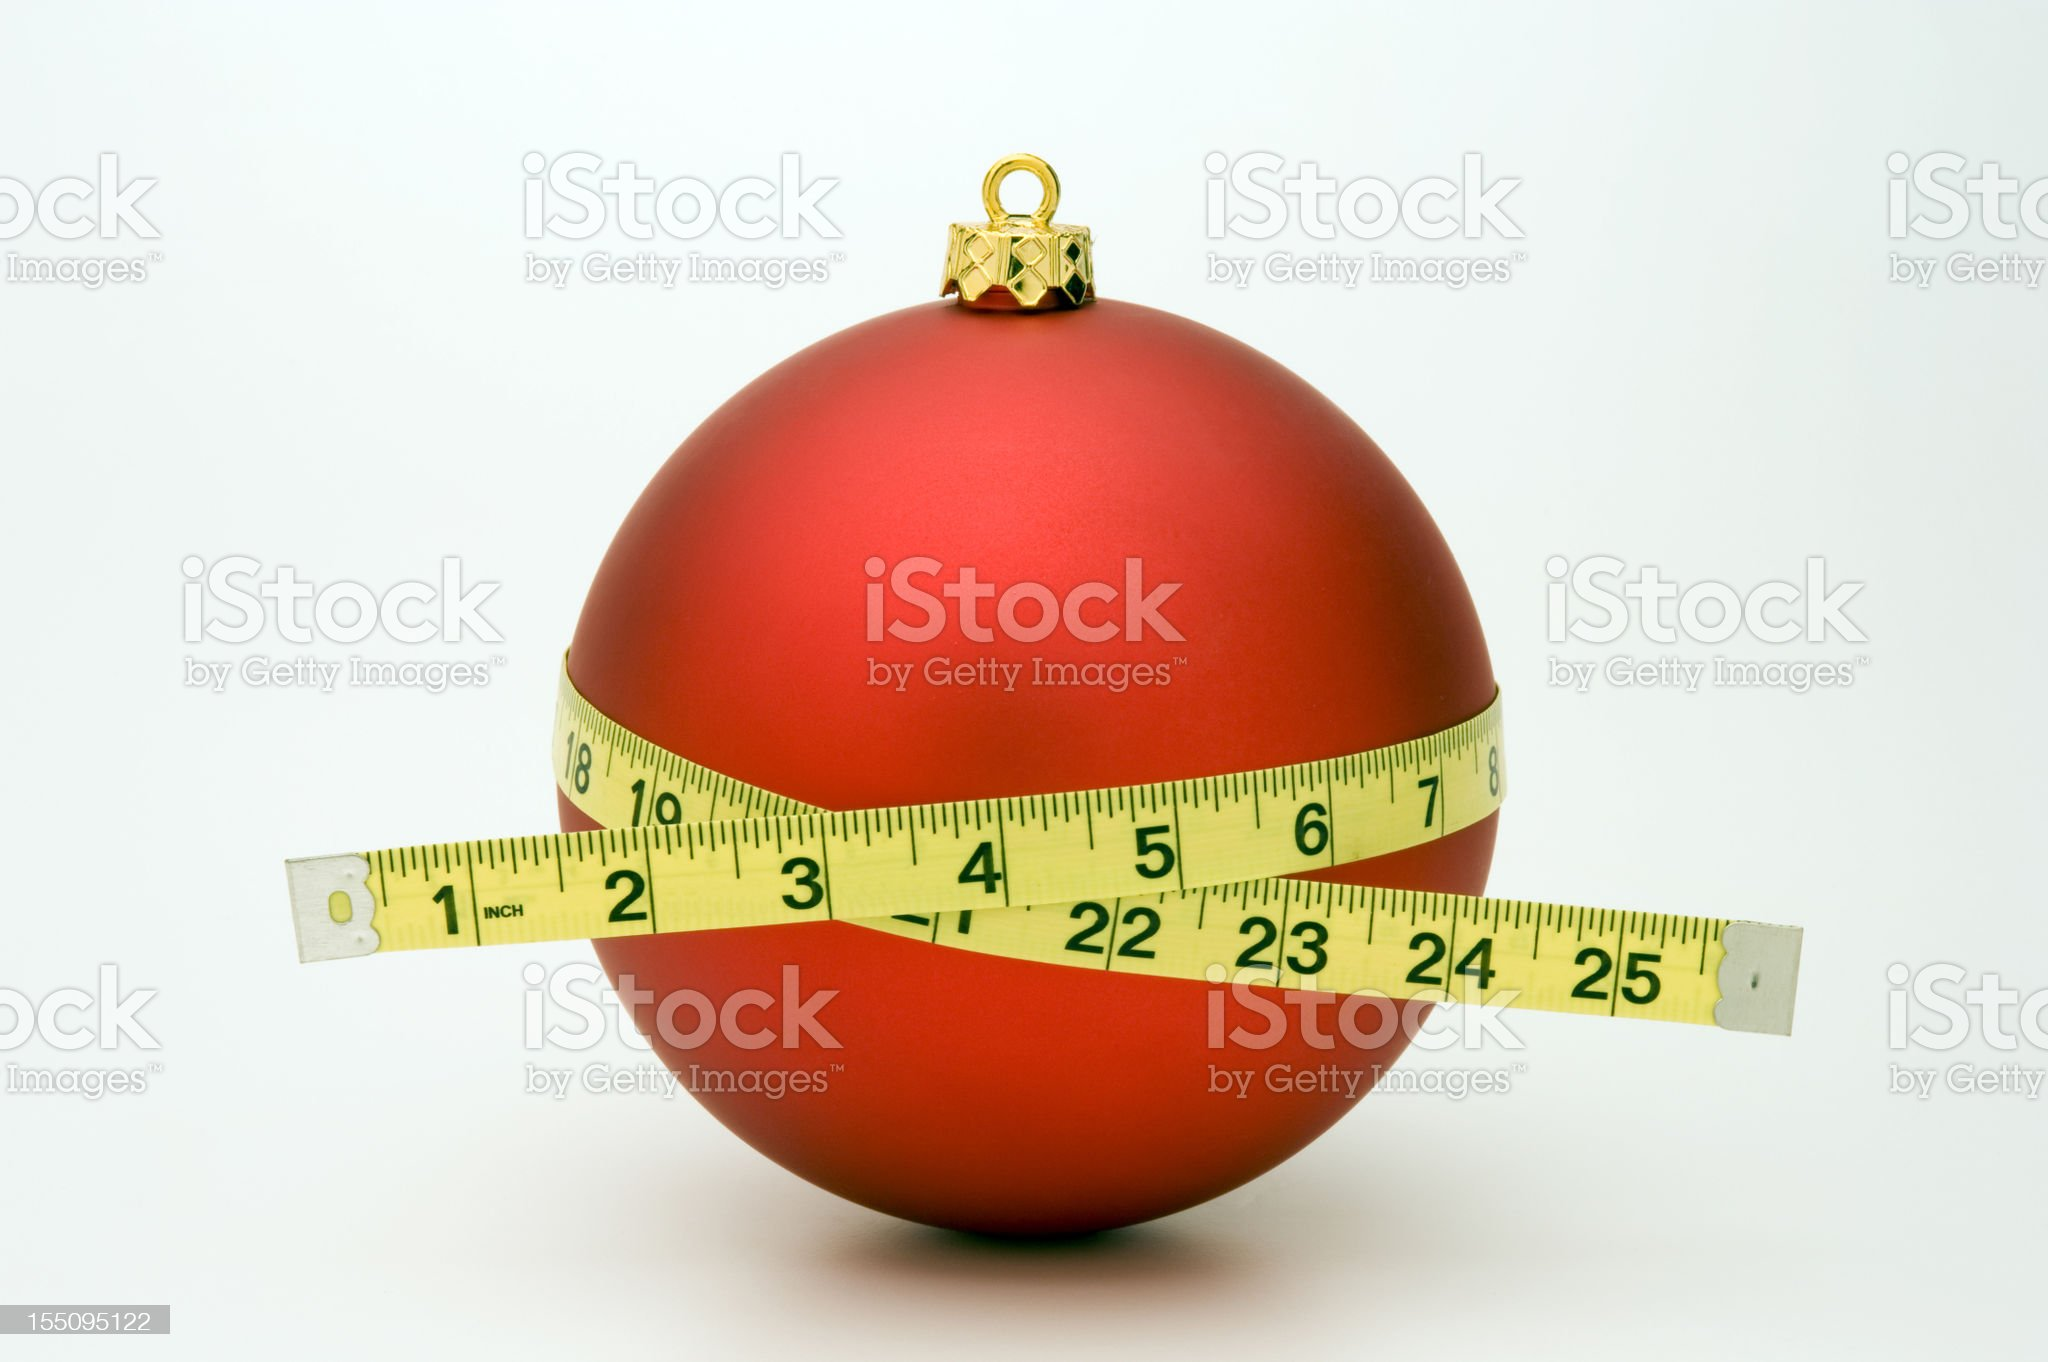 Gaining Weight at Christmas royalty-free stock photo